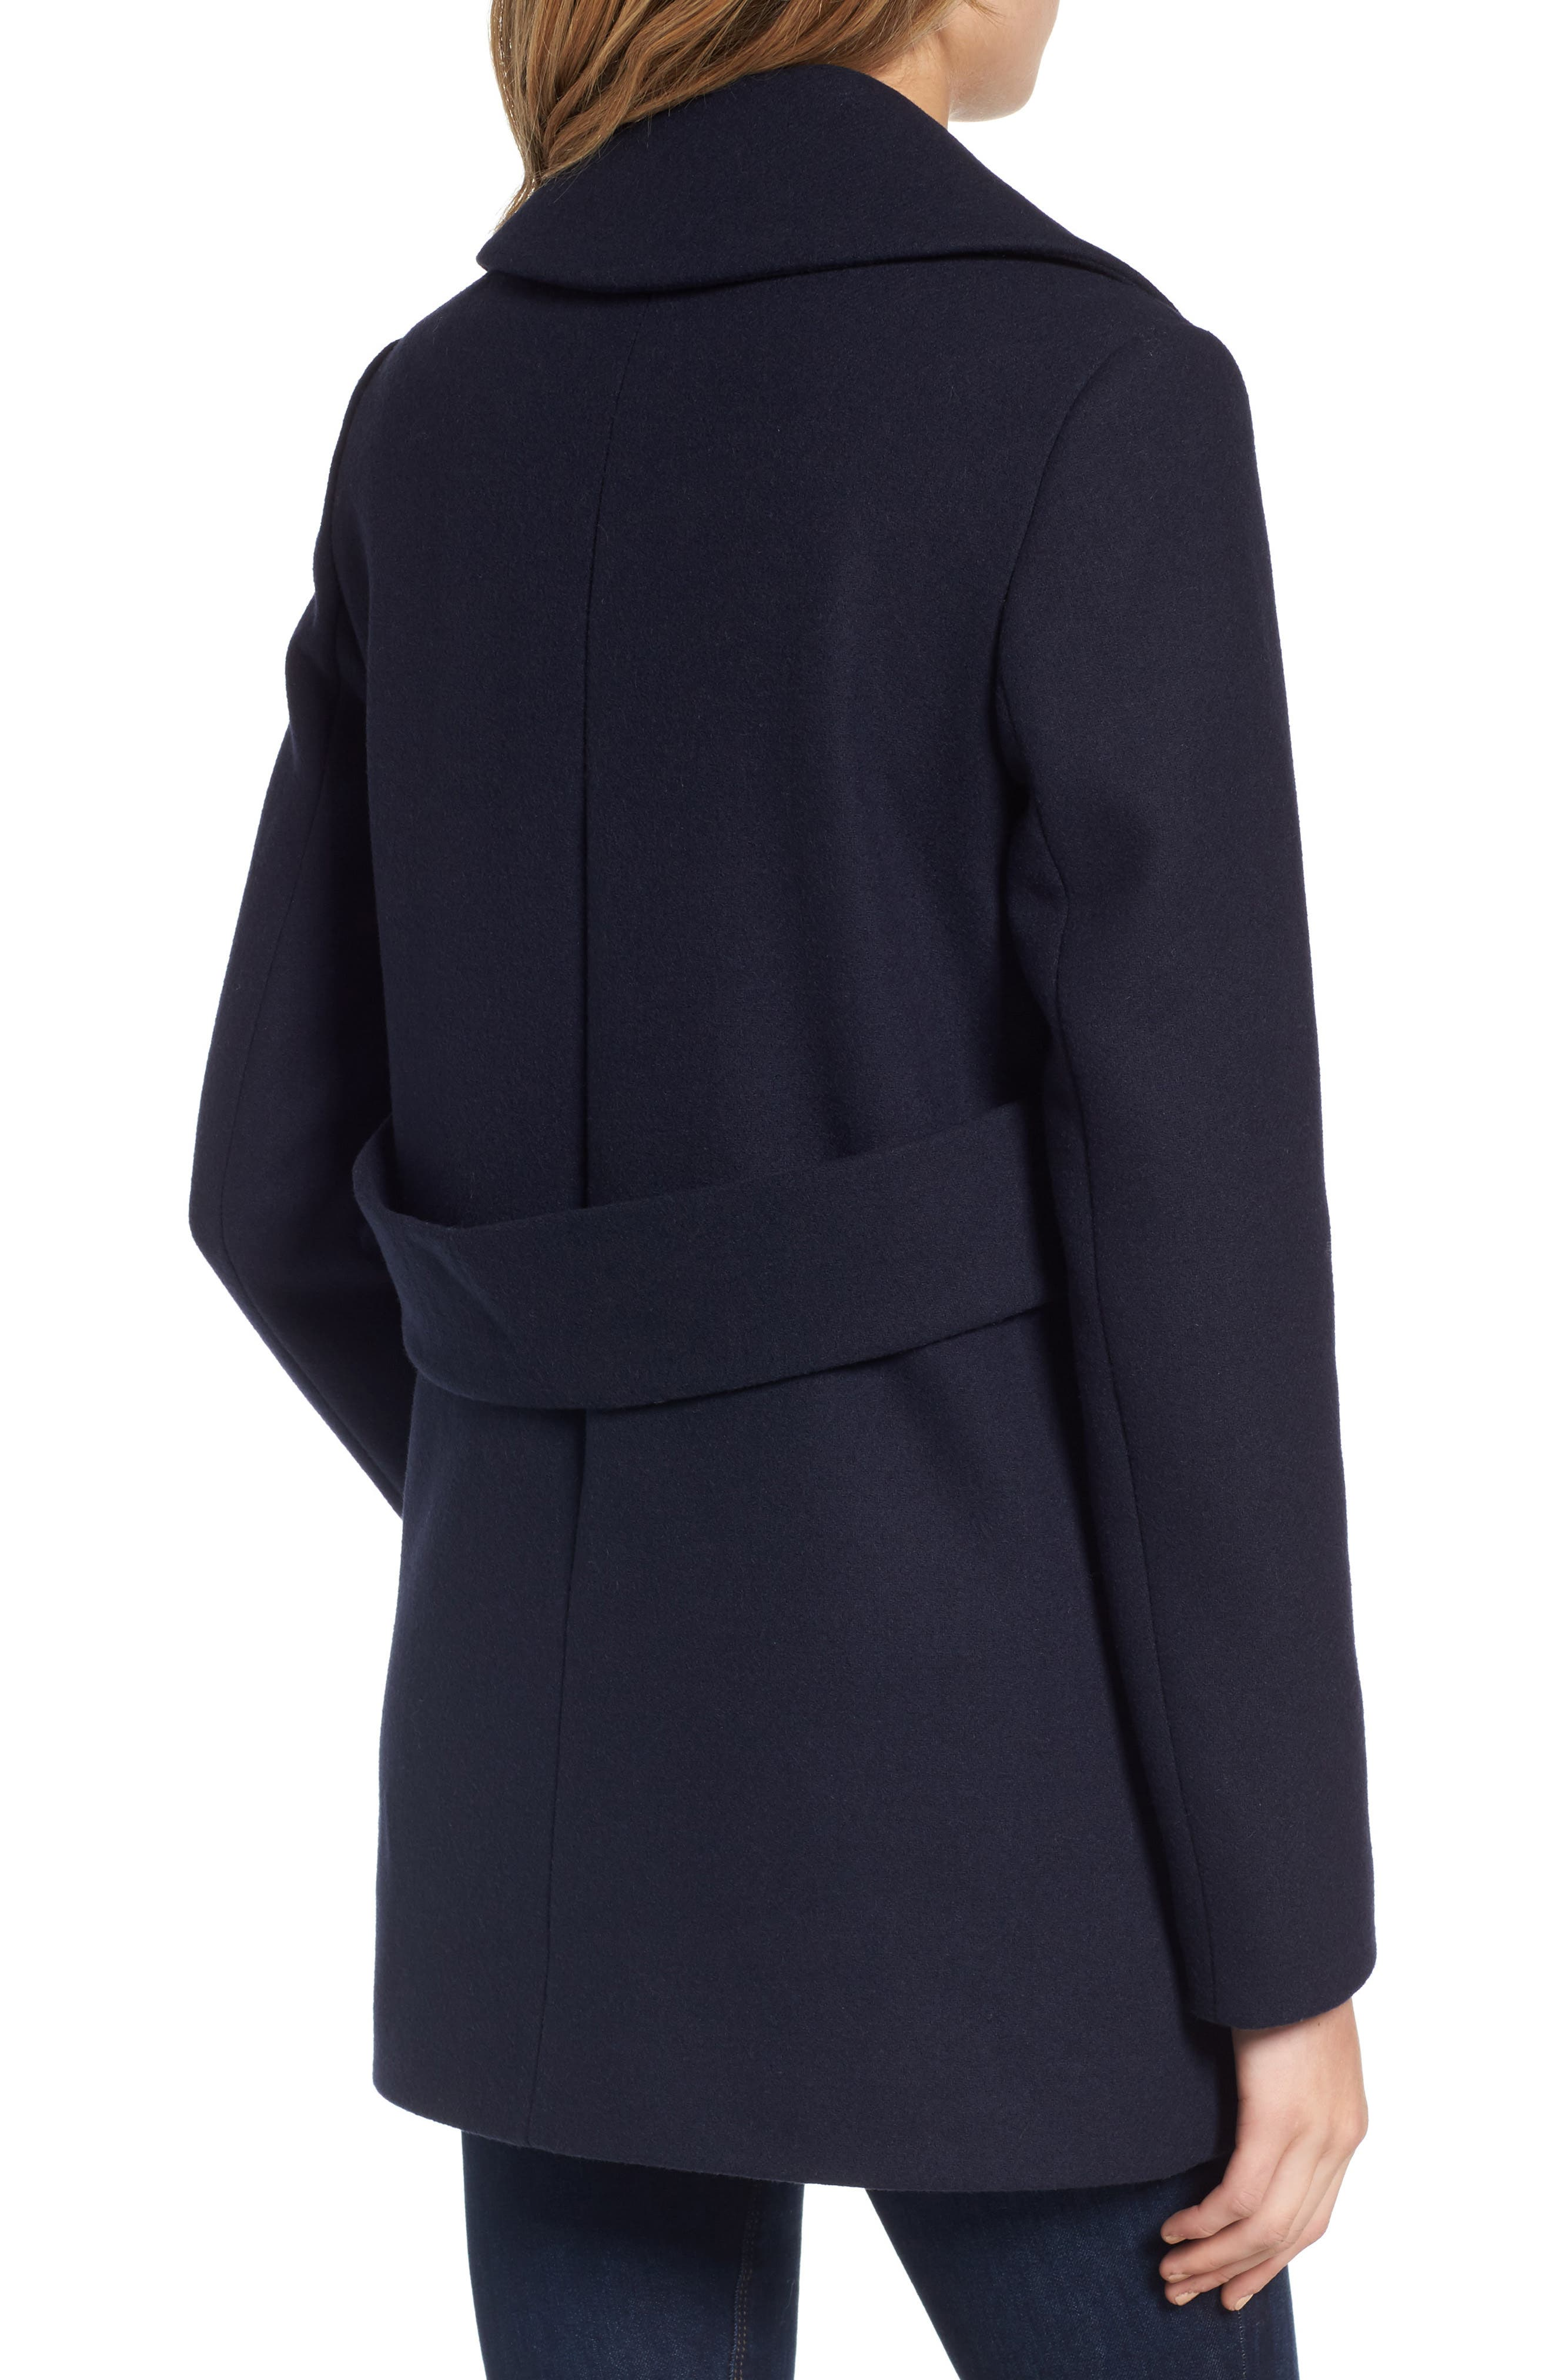 women s french connection coats jackets nordstrom #1: